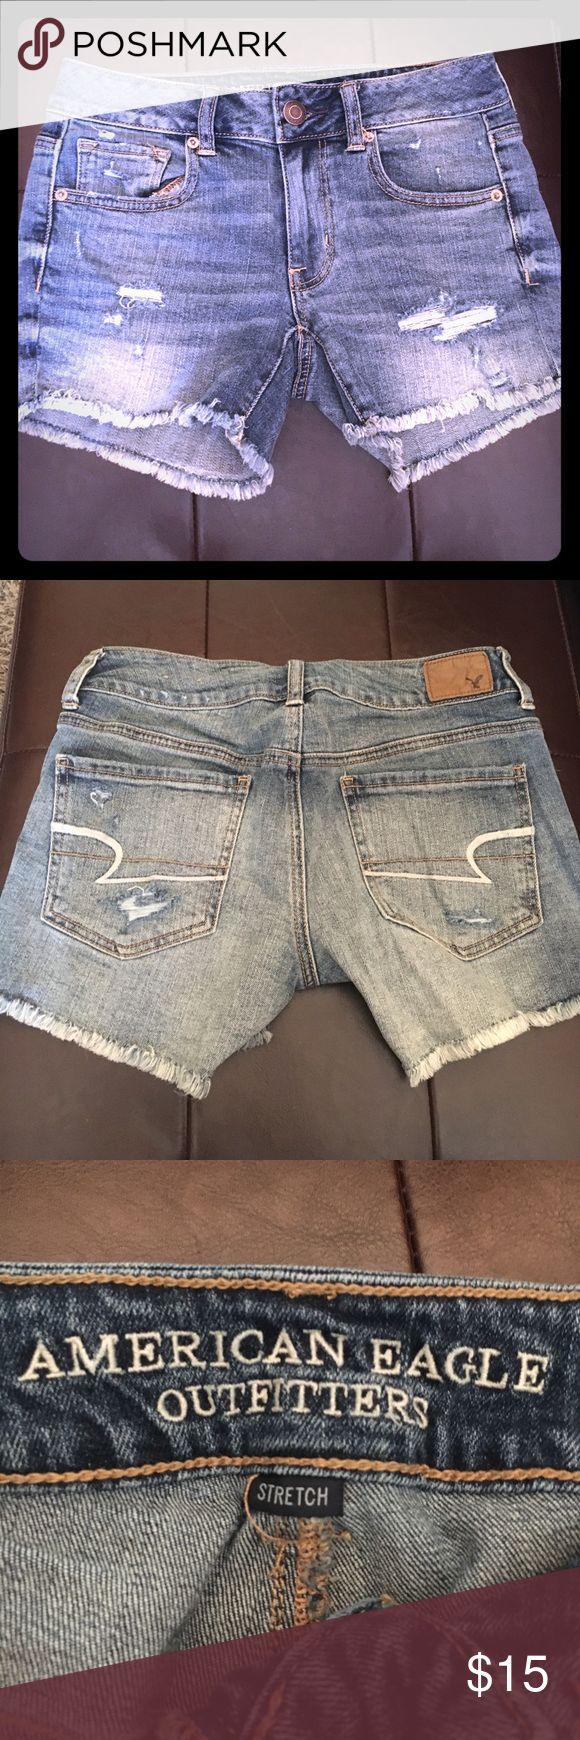 New American Eagle Midi Shorts Size 2 NWOT, ordered wrong size online. Super cute distressed AE midi shorts. Perfect new,condition. No flaws. Size 2 with stretch. American Eagle Outfitters Shorts Jean Shorts